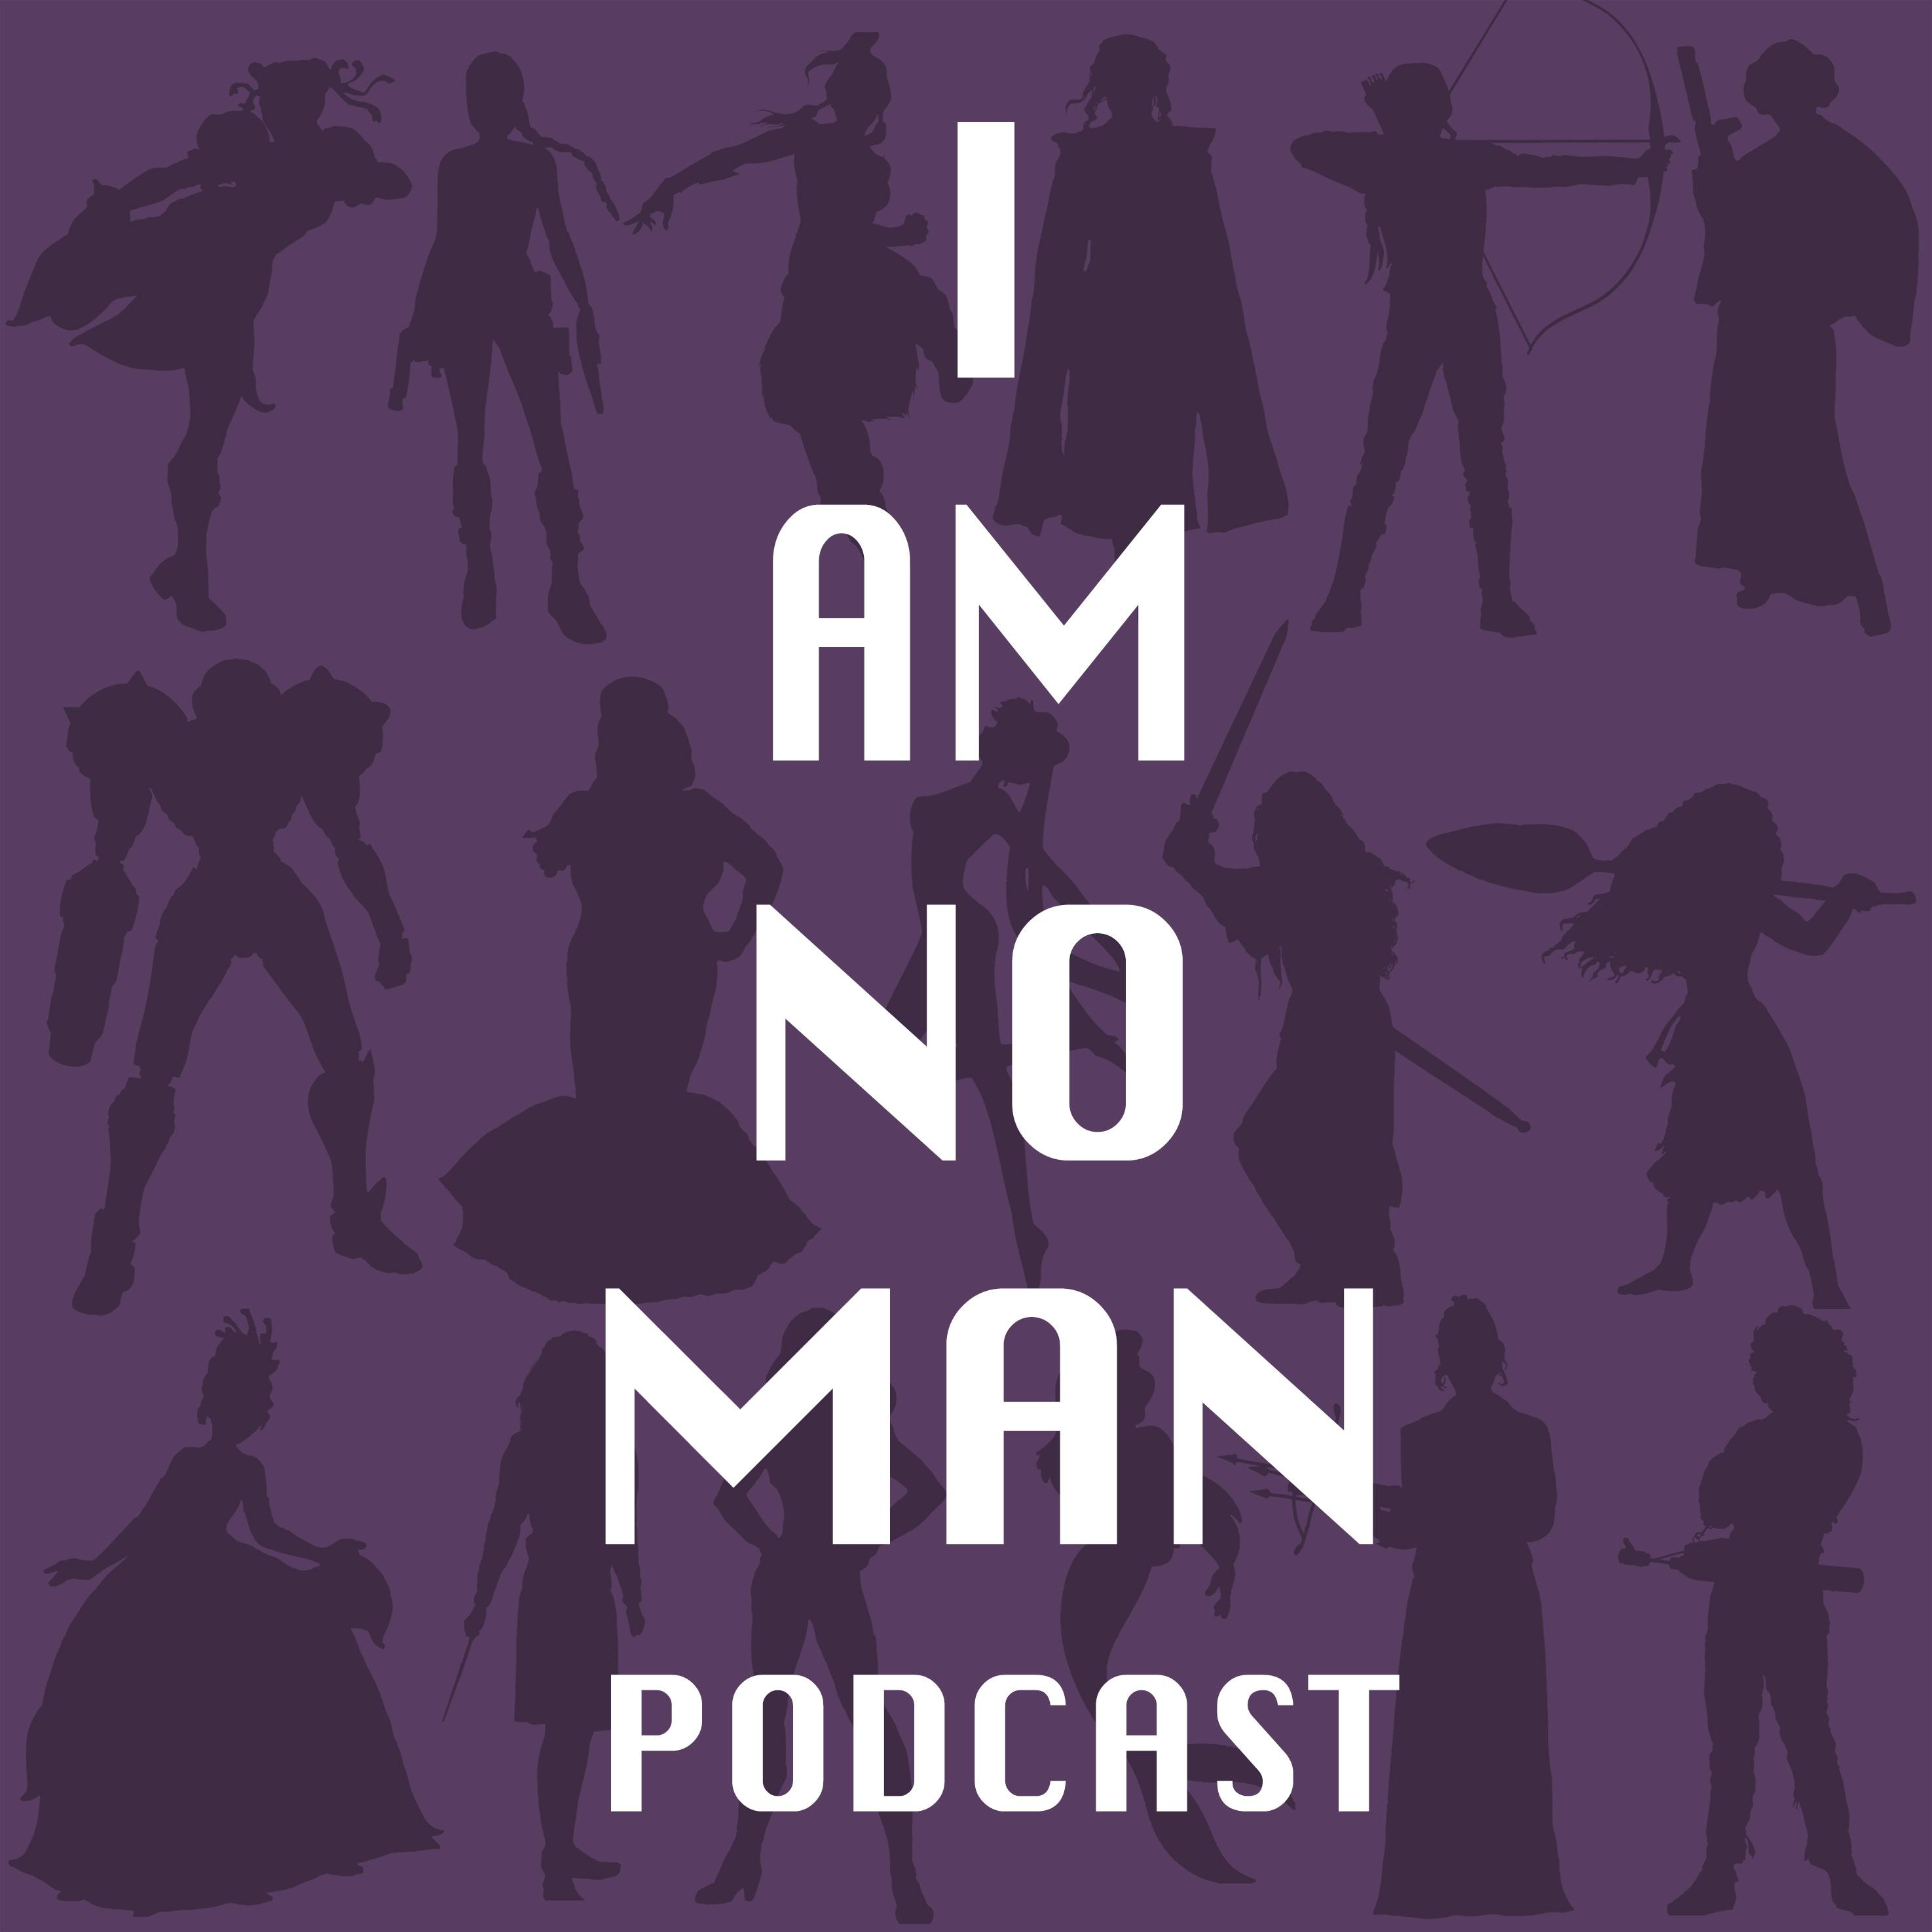 I AM NO MAN podcast show art